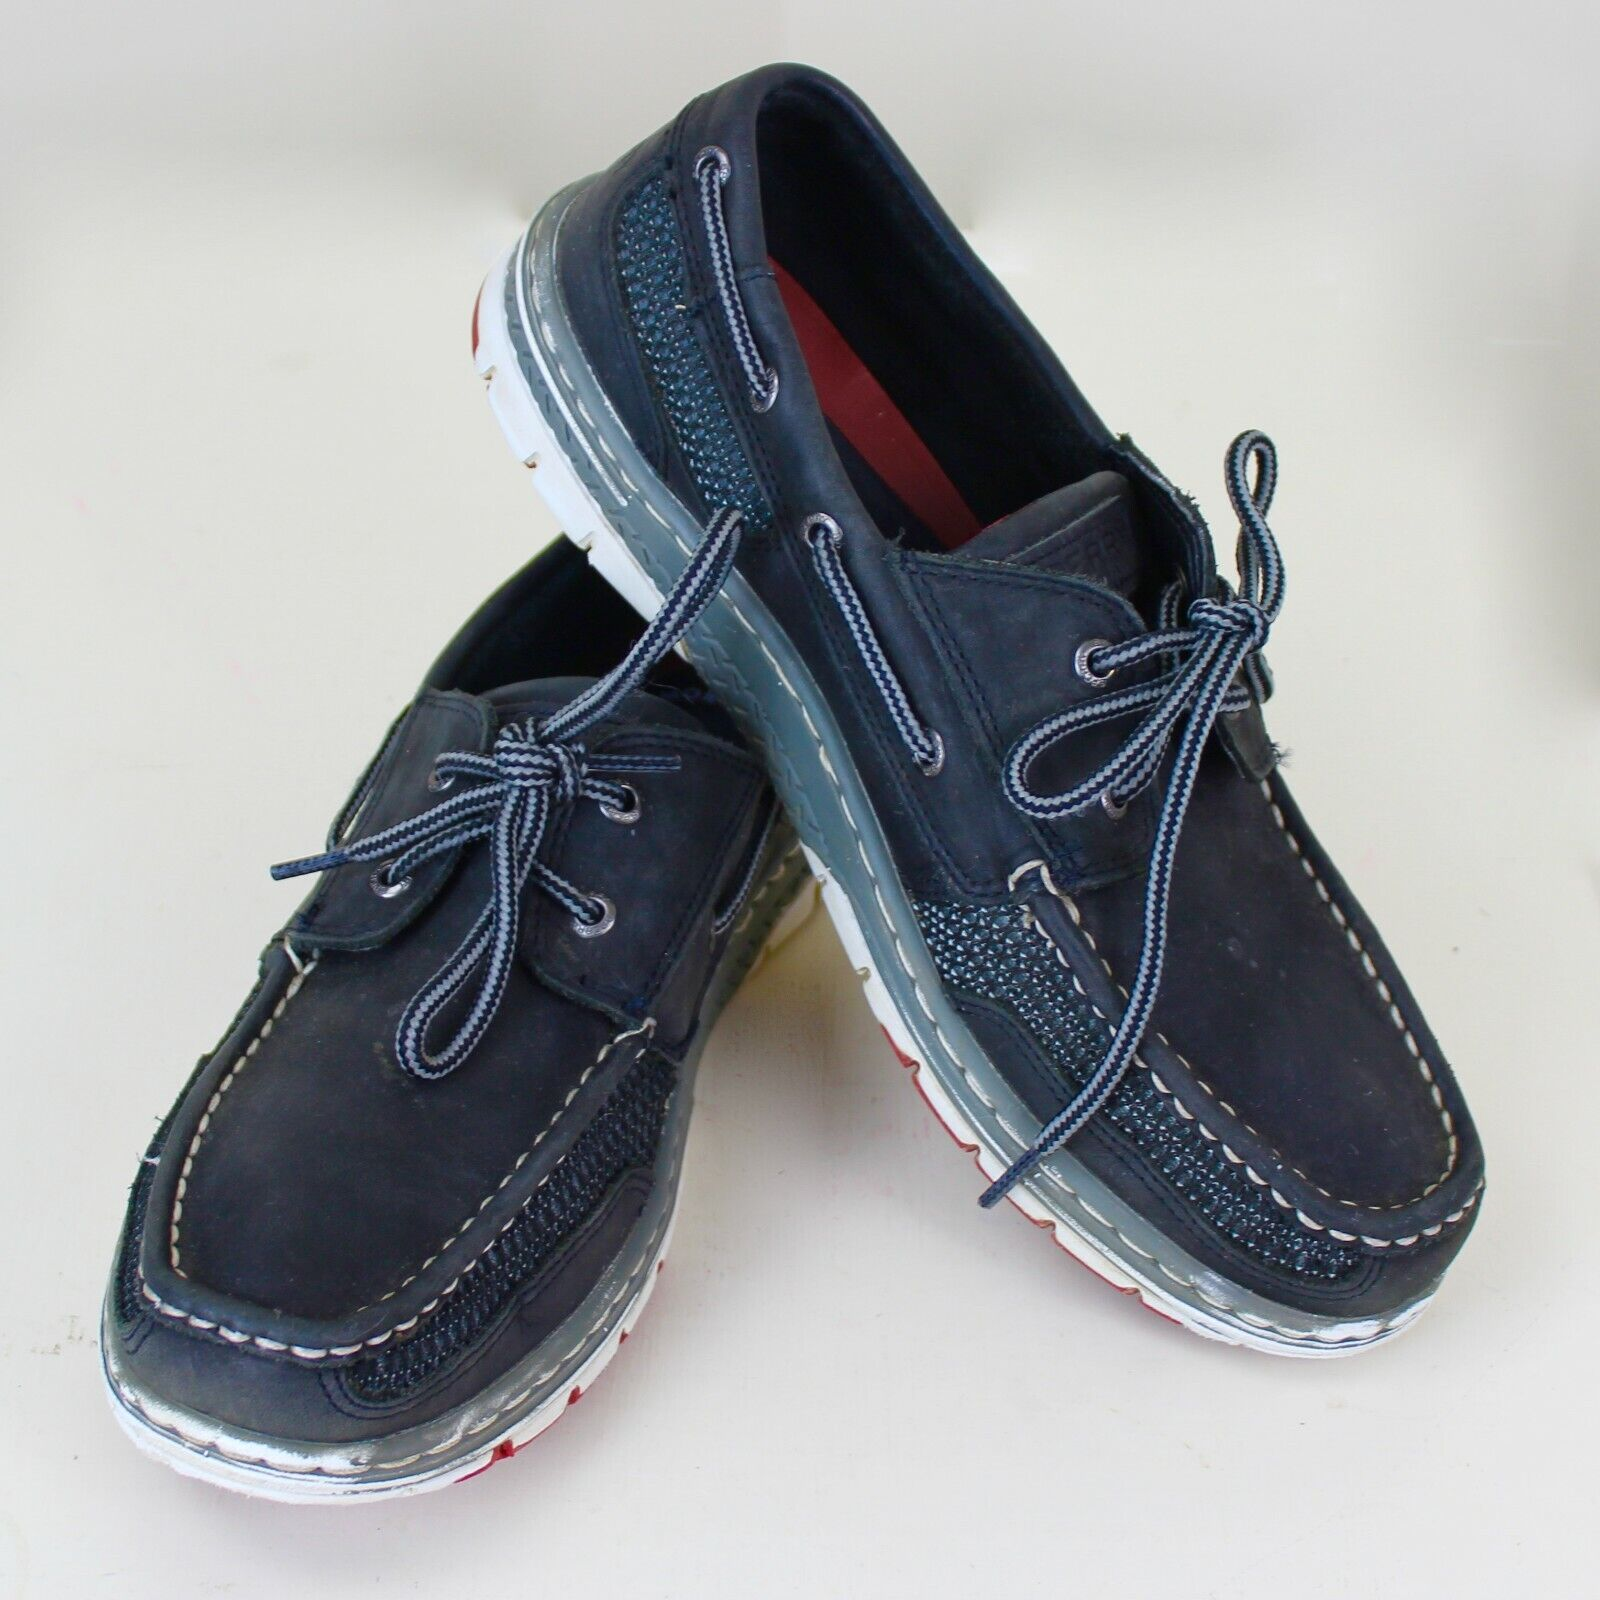 Sperry Top Sider Boat shoes 10.5M Navy bluee White Detail Memory Foam Excellent